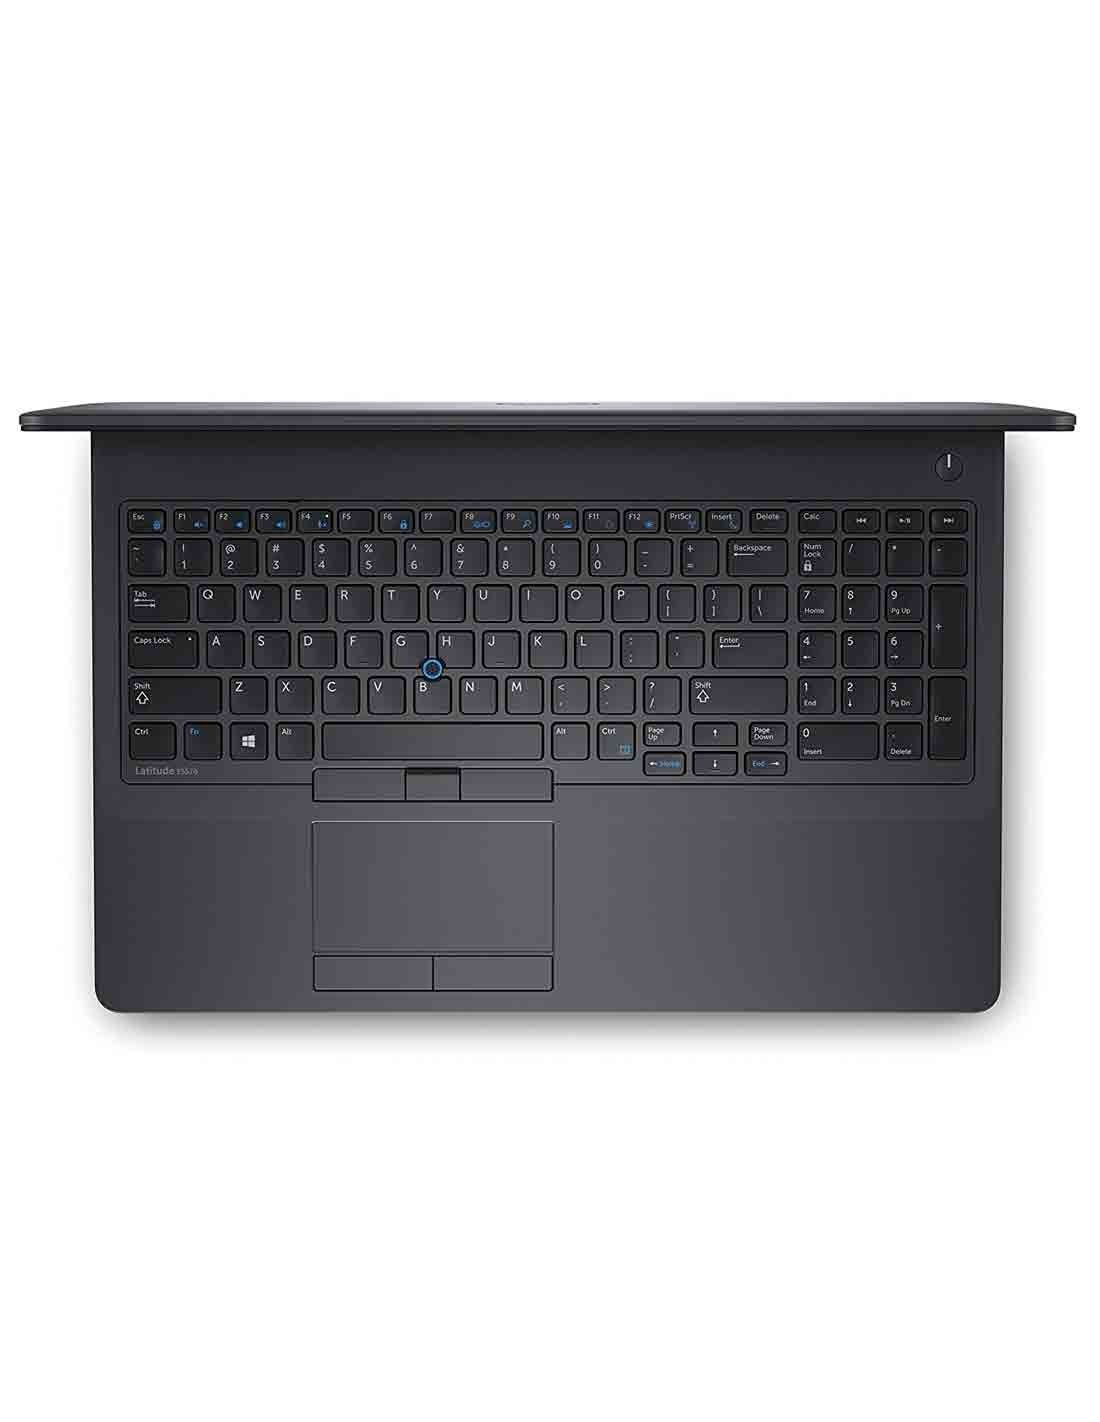 Dell Latitude E5570 Intel Core i7 8GB Memory Business Images and Pictures